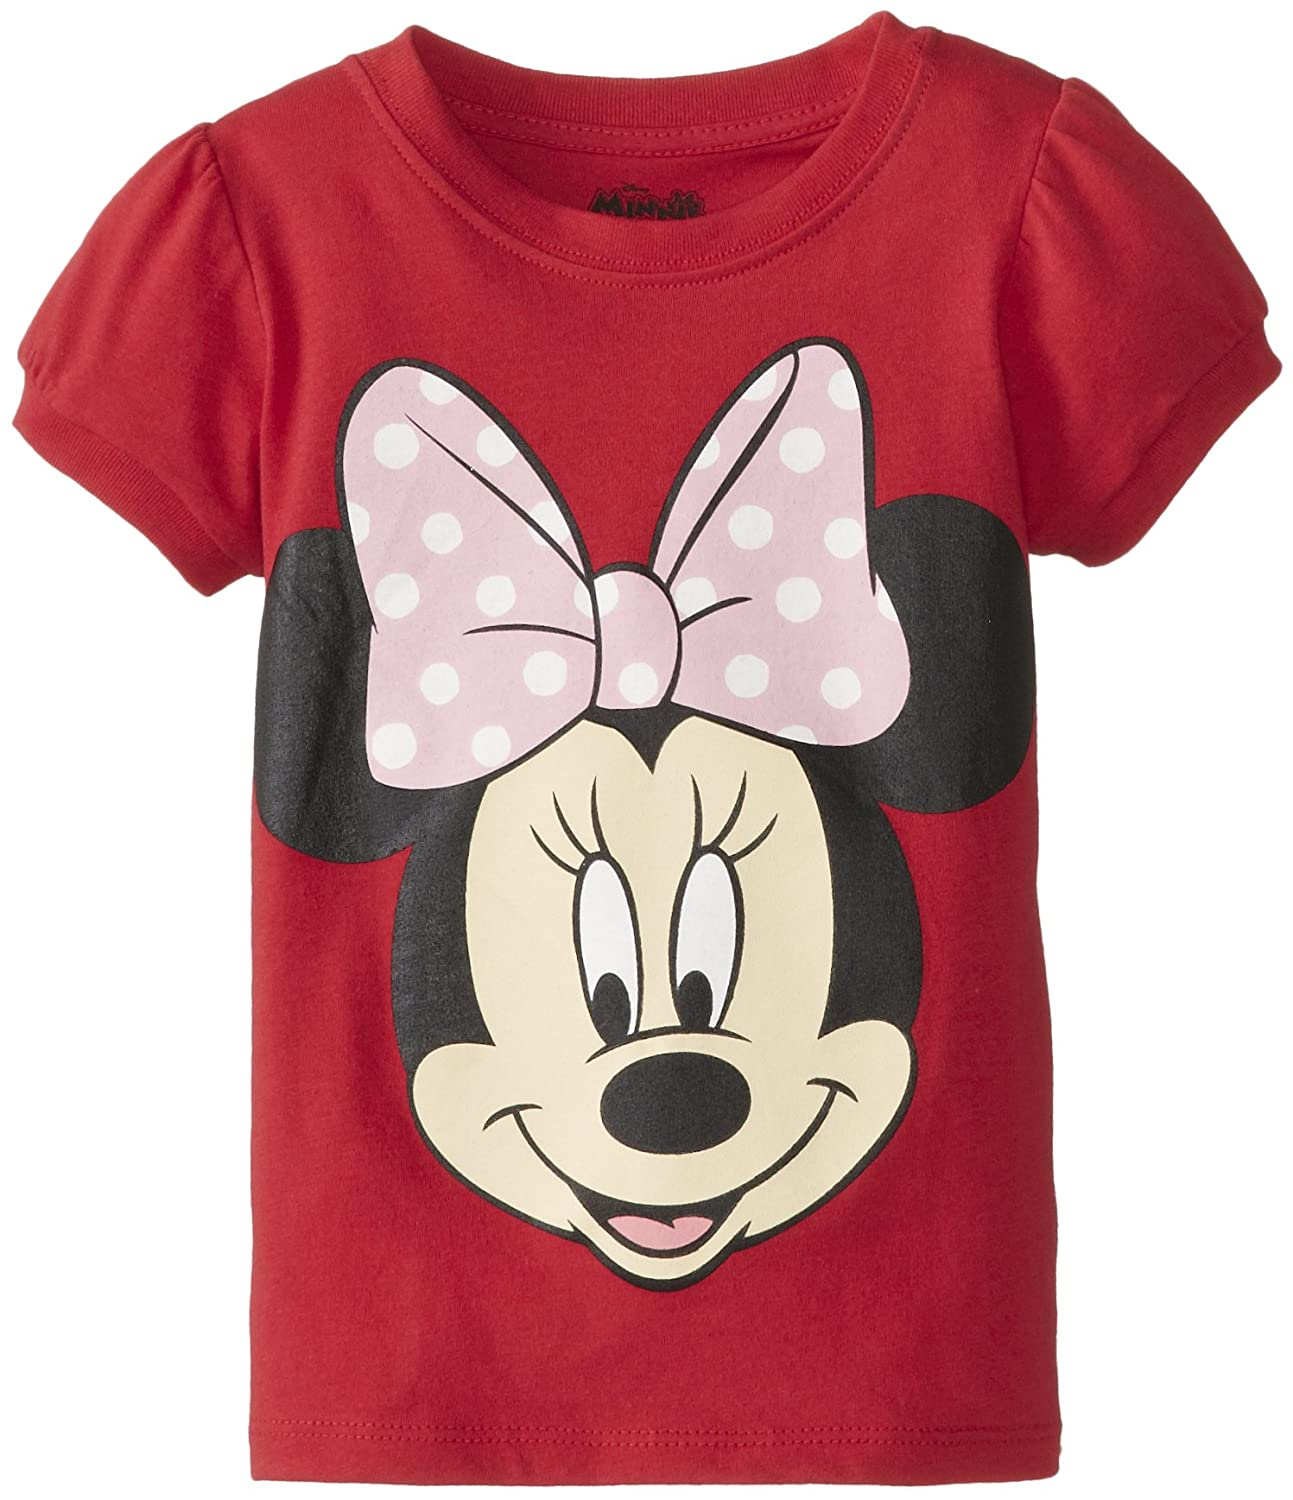 Amazon.com: Disney Girls\' Minnie Mouse T-Shirt: Clothing